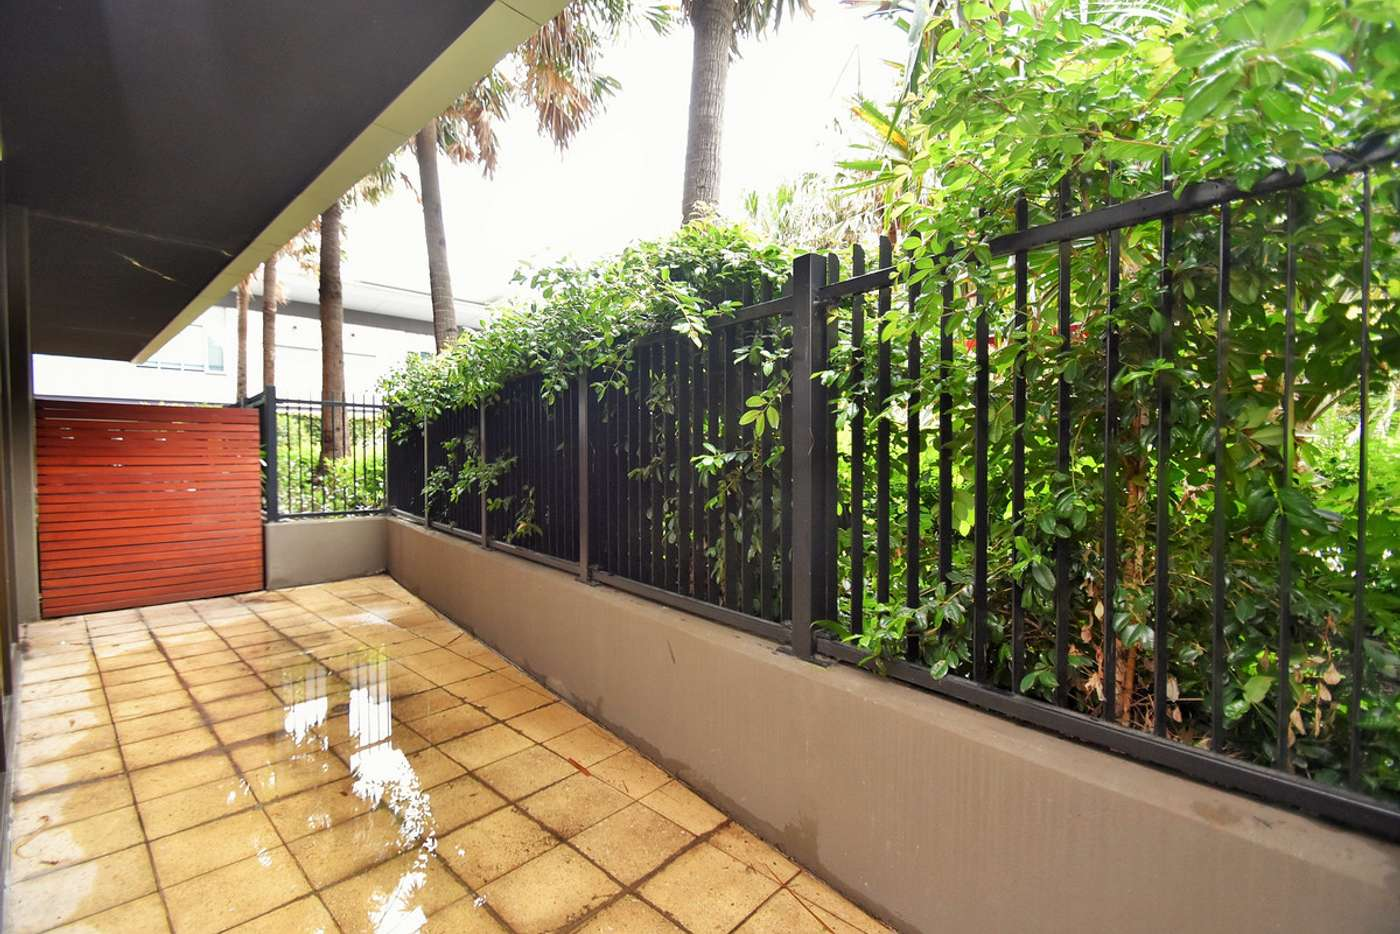 Sixth view of Homely apartment listing, 108/2 Rouse Street, Port Melbourne VIC 3207